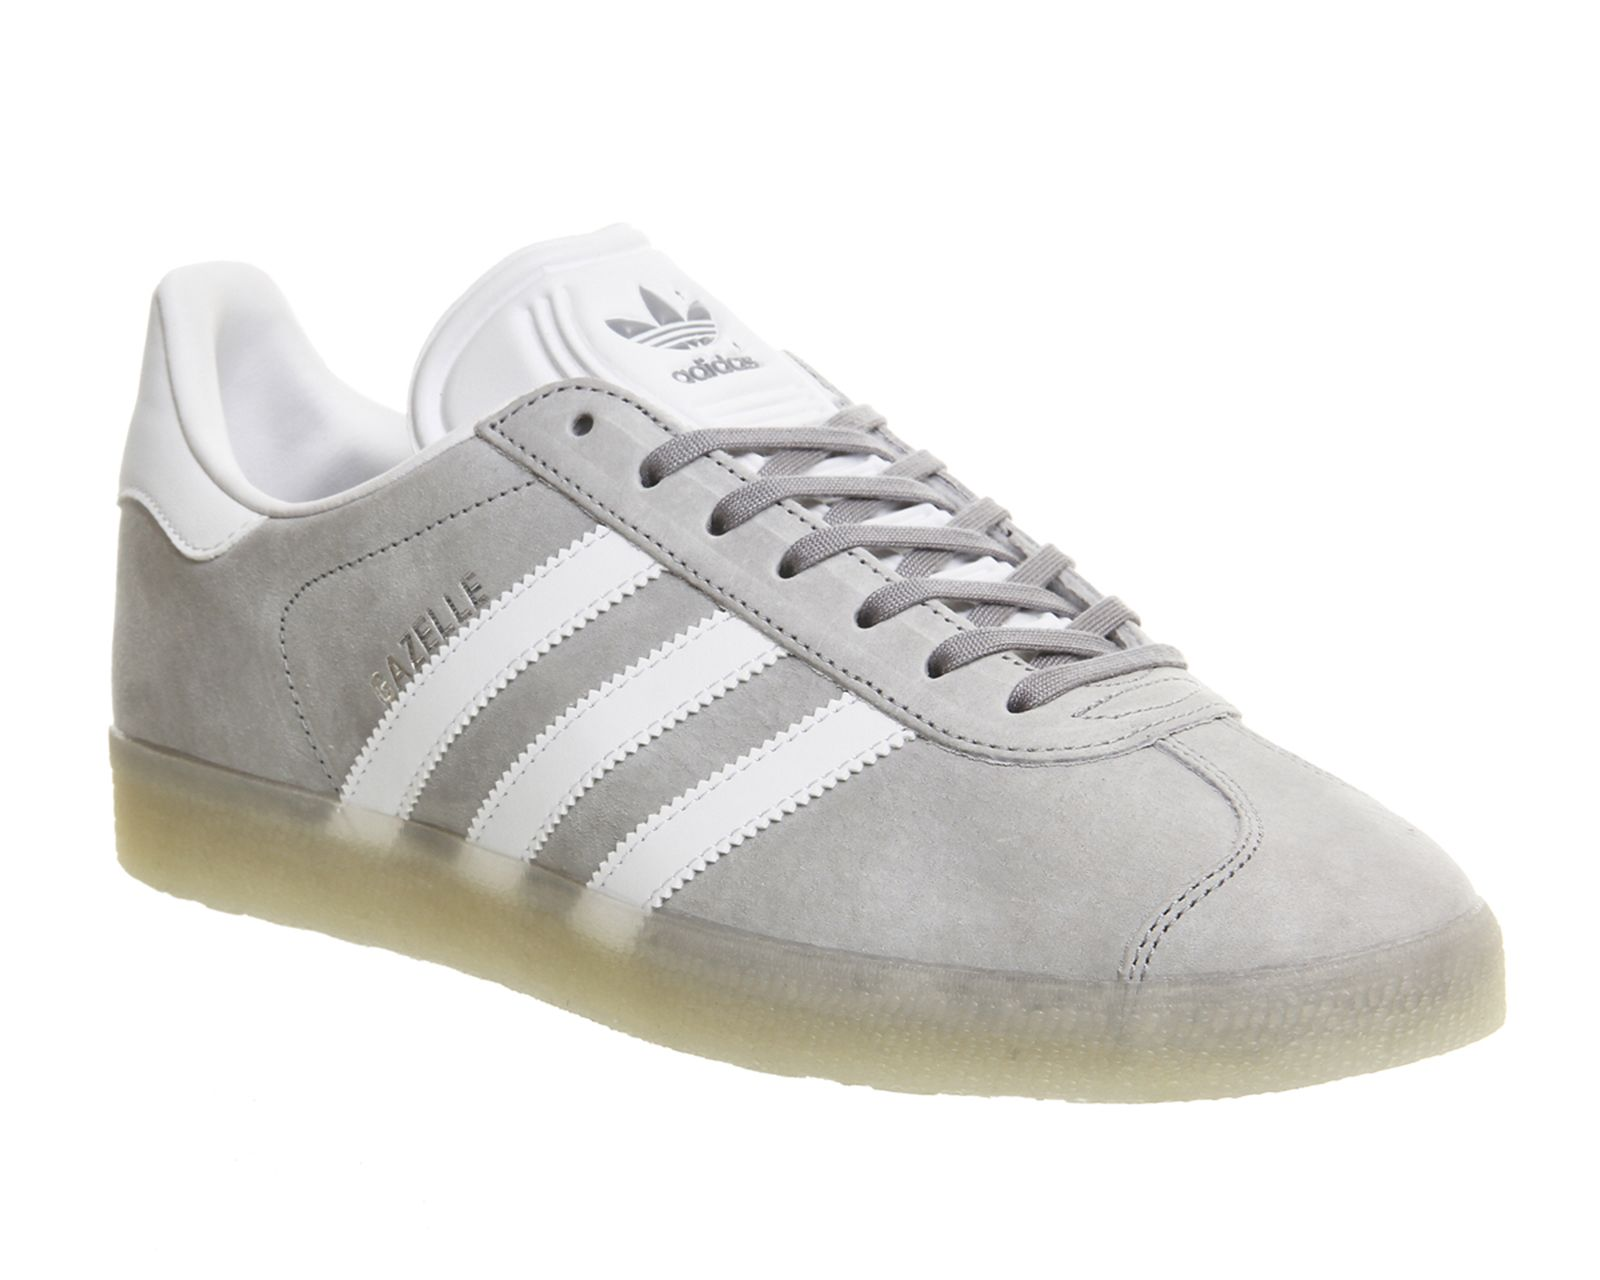 Buy Mid Grey White Ice Adidas Gazelle from OFFICE.co.uk.